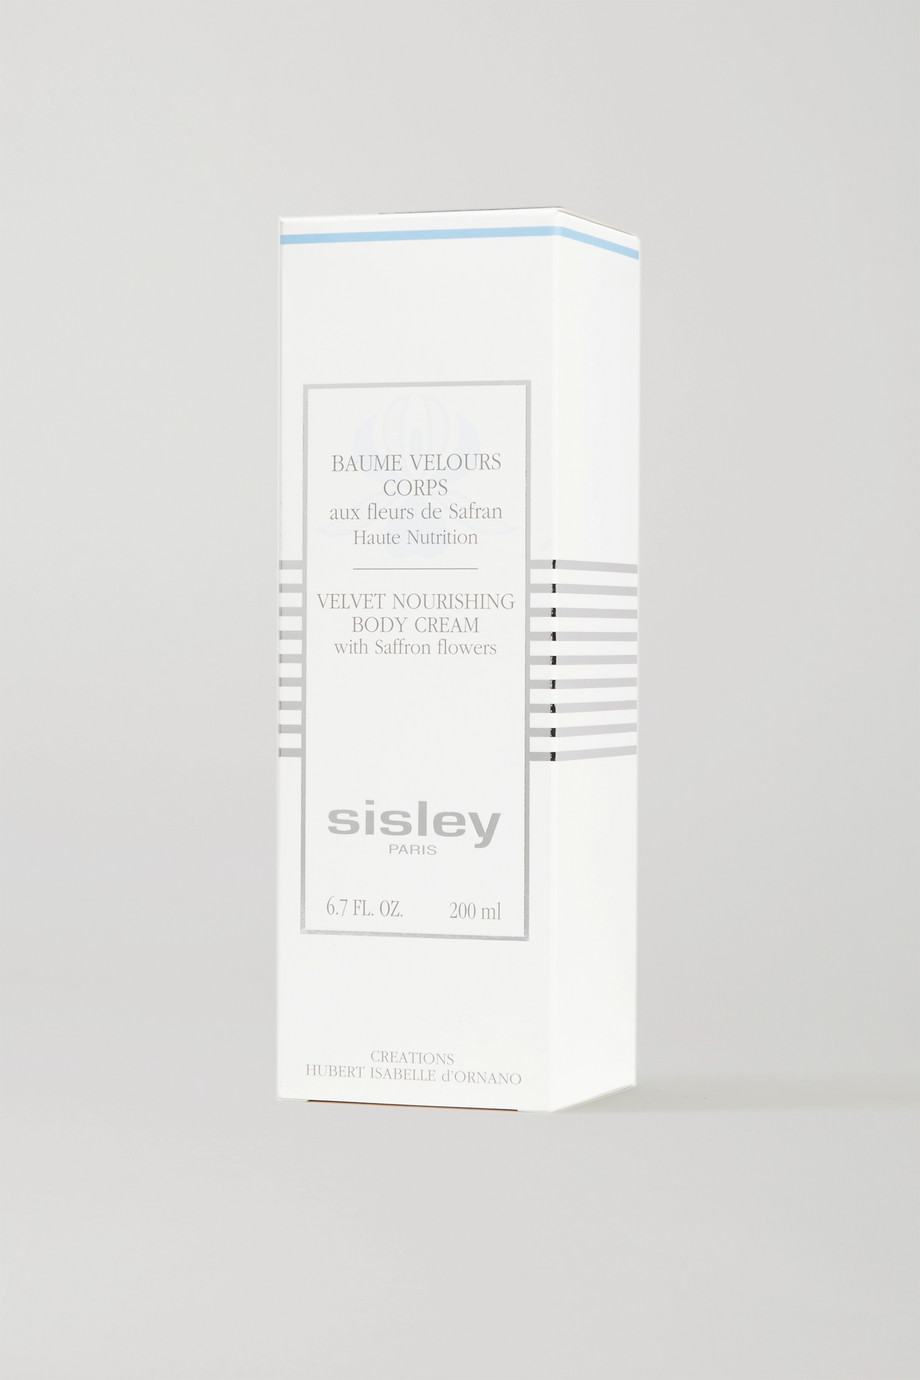 Sisley Velvet Nourishing Body Cream, 200ml